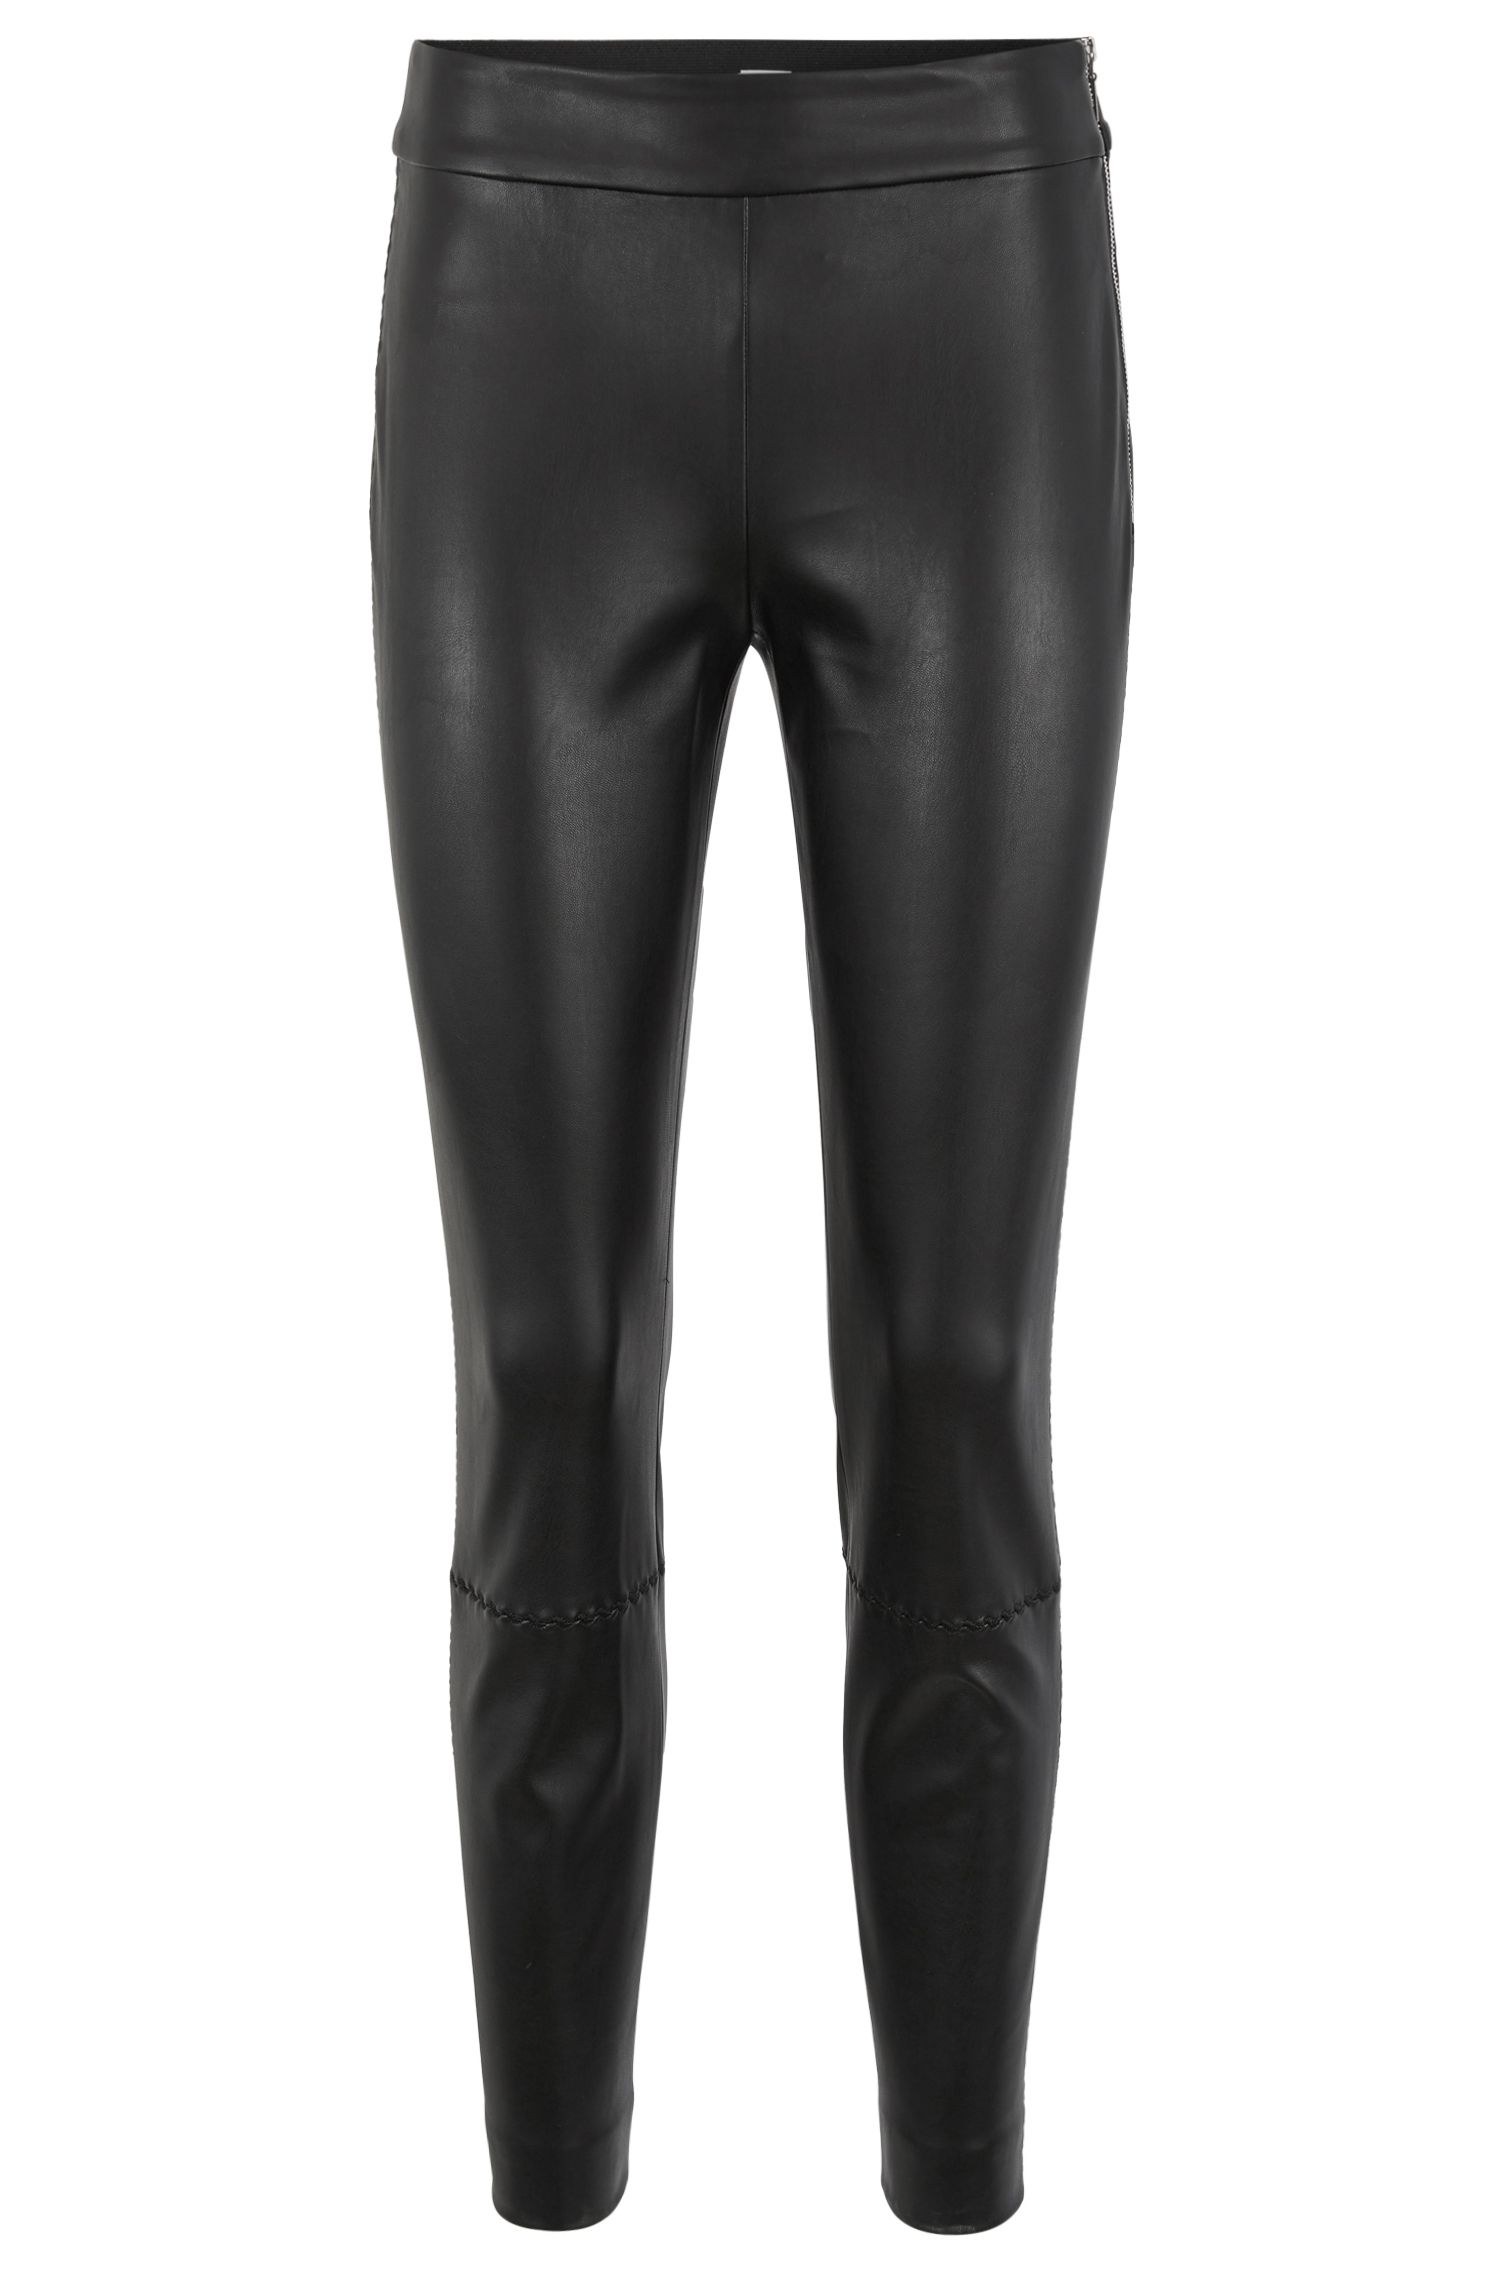 Legging-style trousers in faux leather with embroidery detailing, Black